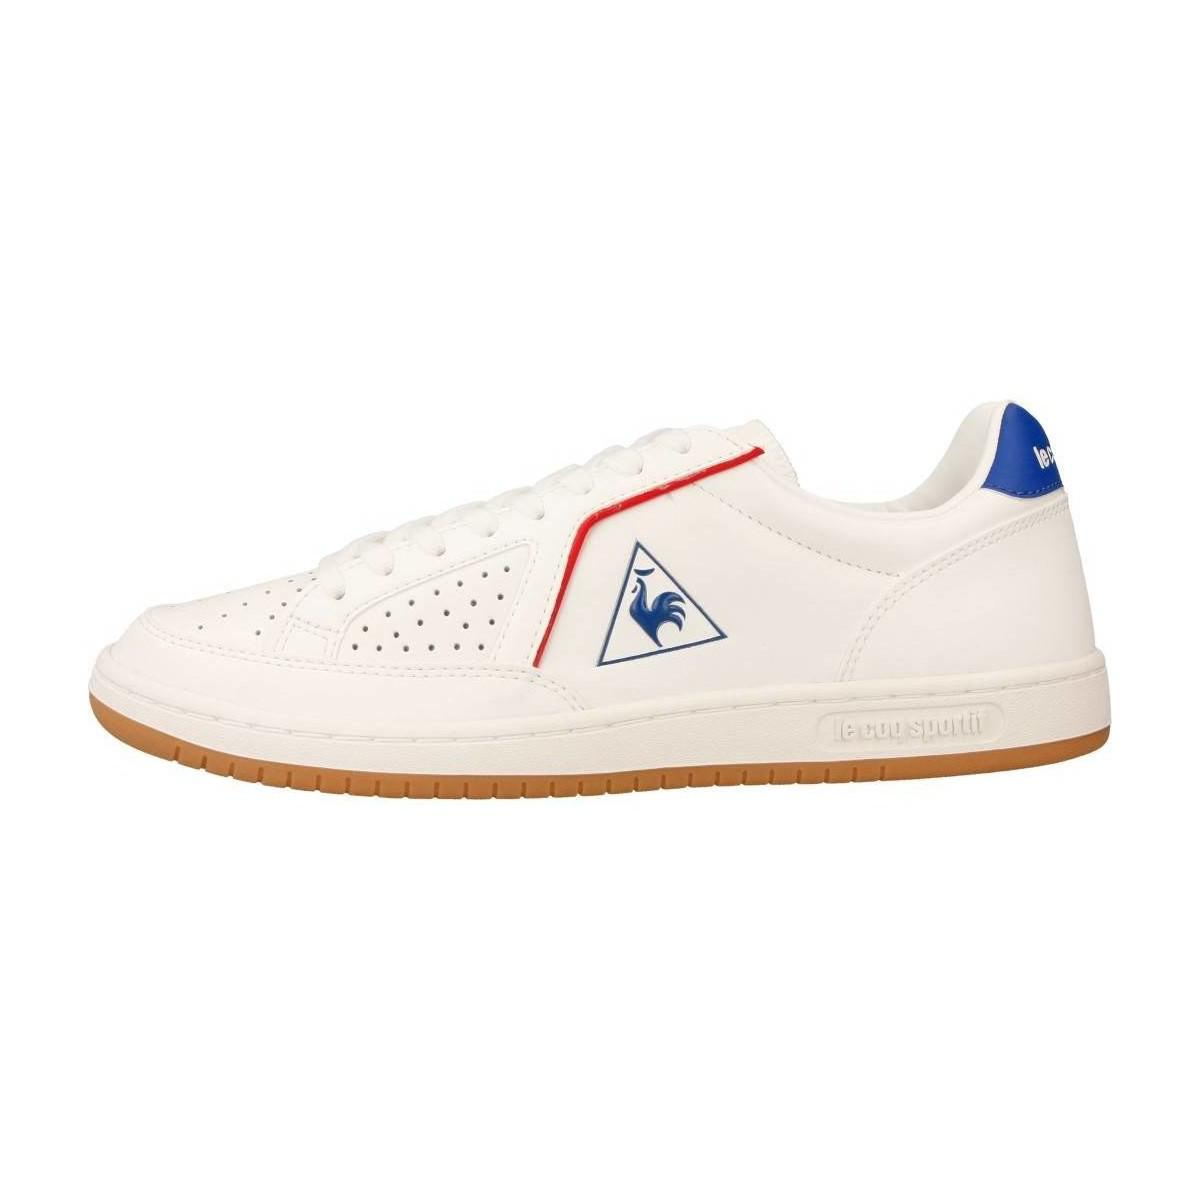 3ed387e36337 Le Coq Sportif Icons Lea Sport Gum Men s Shoes (trainers) In White ...